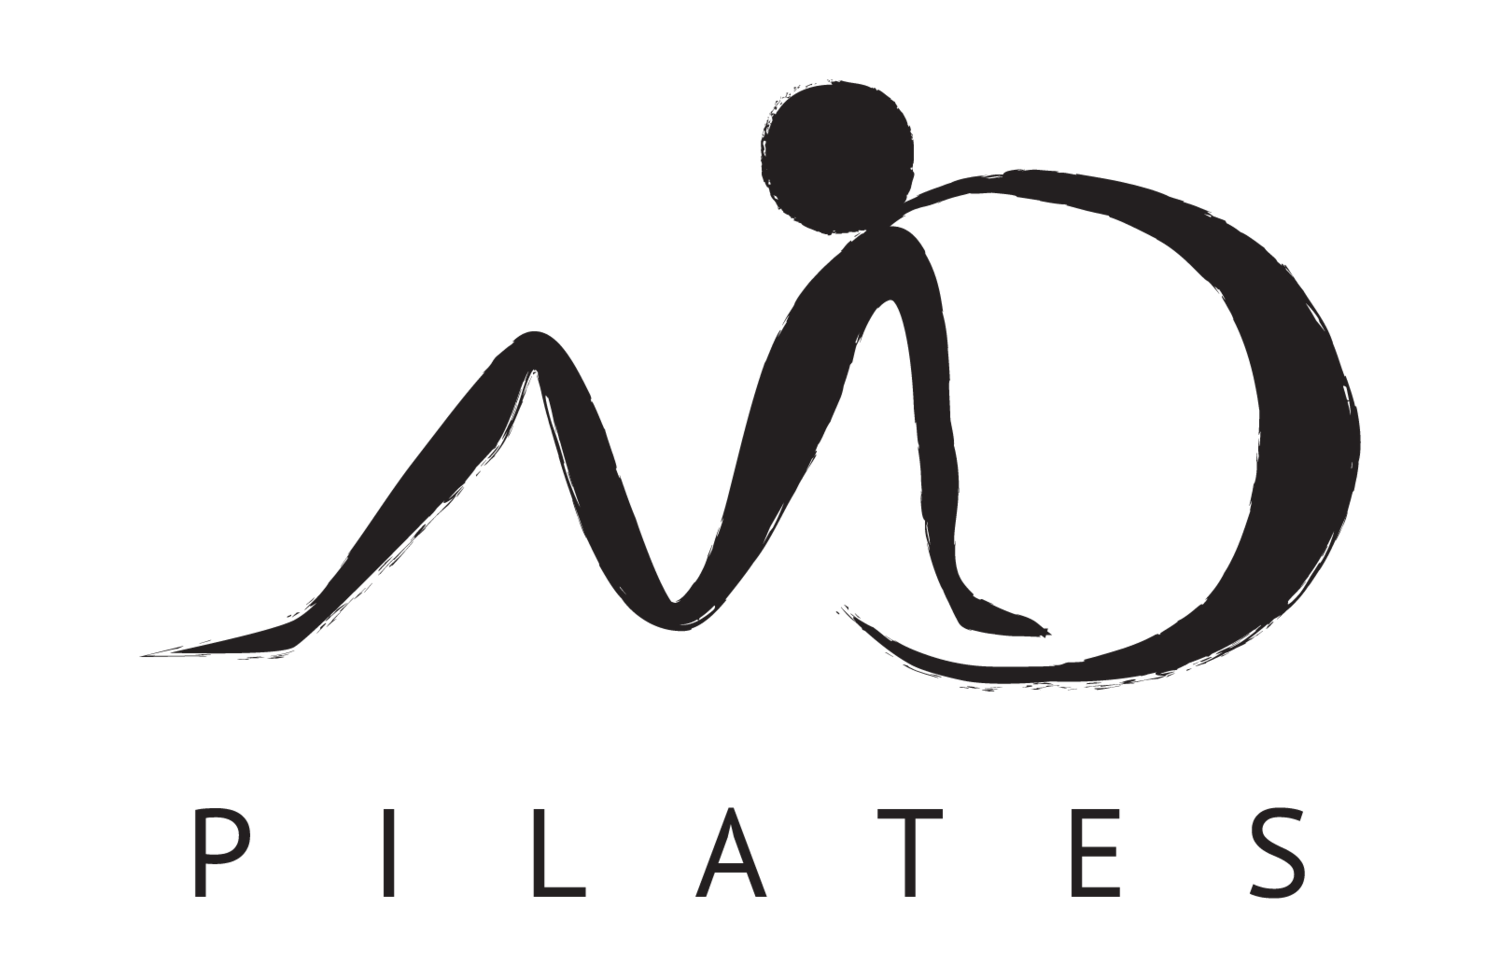 Pilates by Michelle Donati